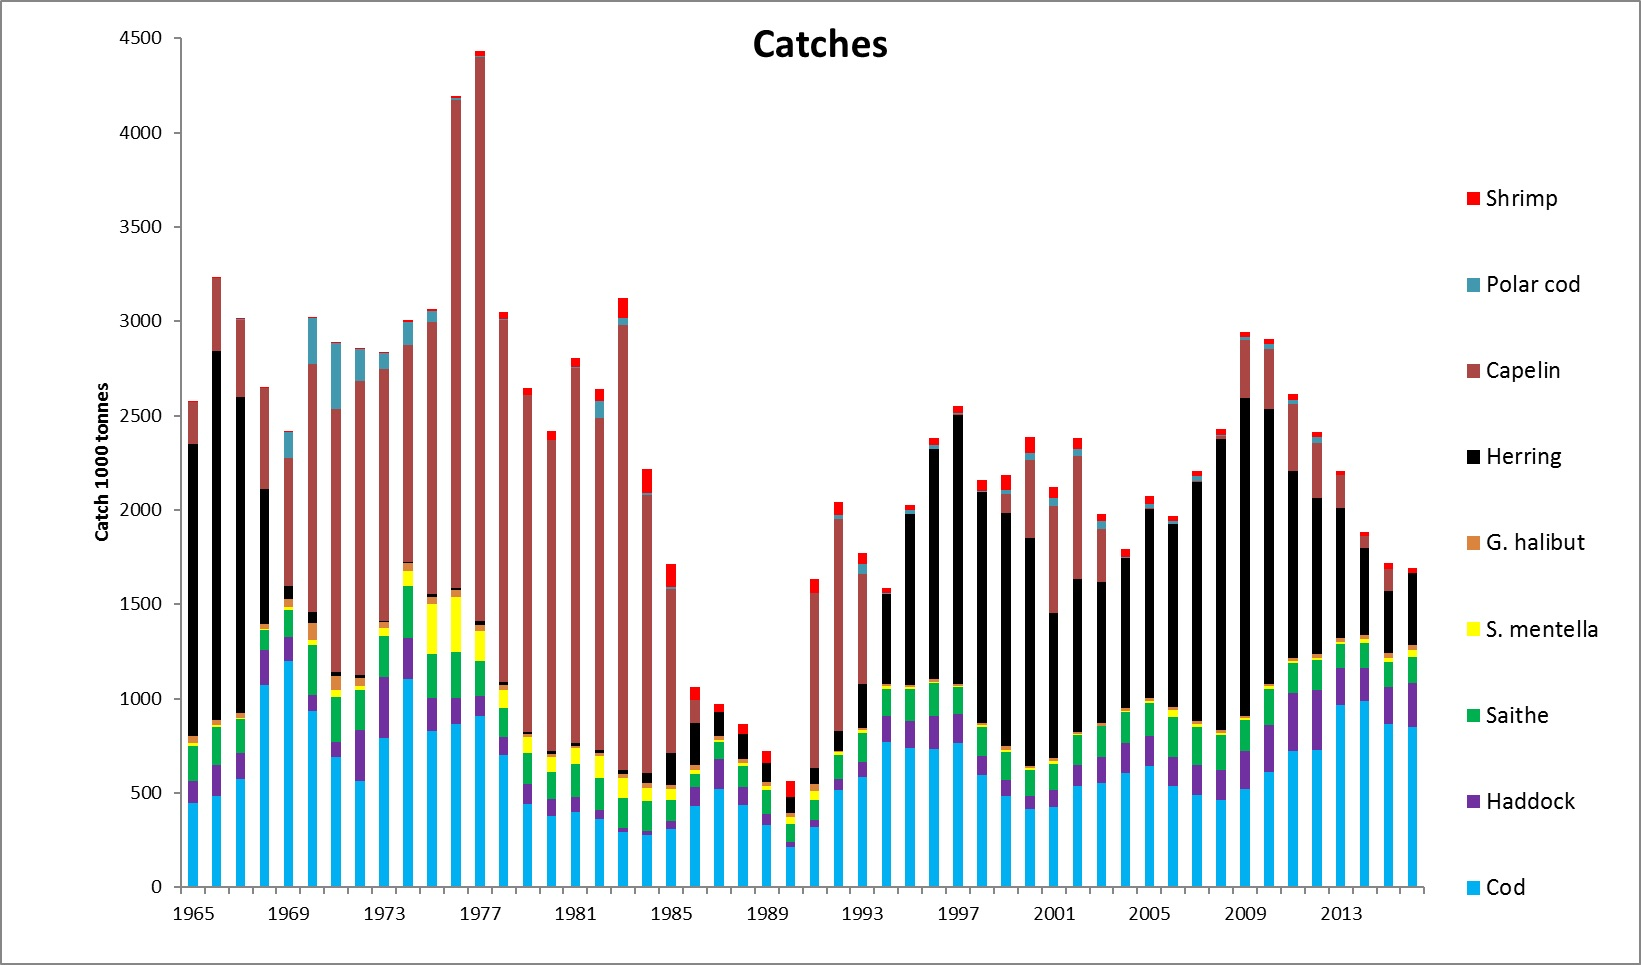 Figure 3.9.1.1. Total catches of the most important stocks in the Barents Sea and adjacent waters of Norwegian and Greenland Sea (including catches in all of ICES area 2a, i.e. along the Norwegian coast south to 62 N) from 1965-2017. Catches of Norwegian spring-spawning herring outside ICES area 2a are also included. Also minor catches of other stocks are taken in the Barents Sea (see ICES website).